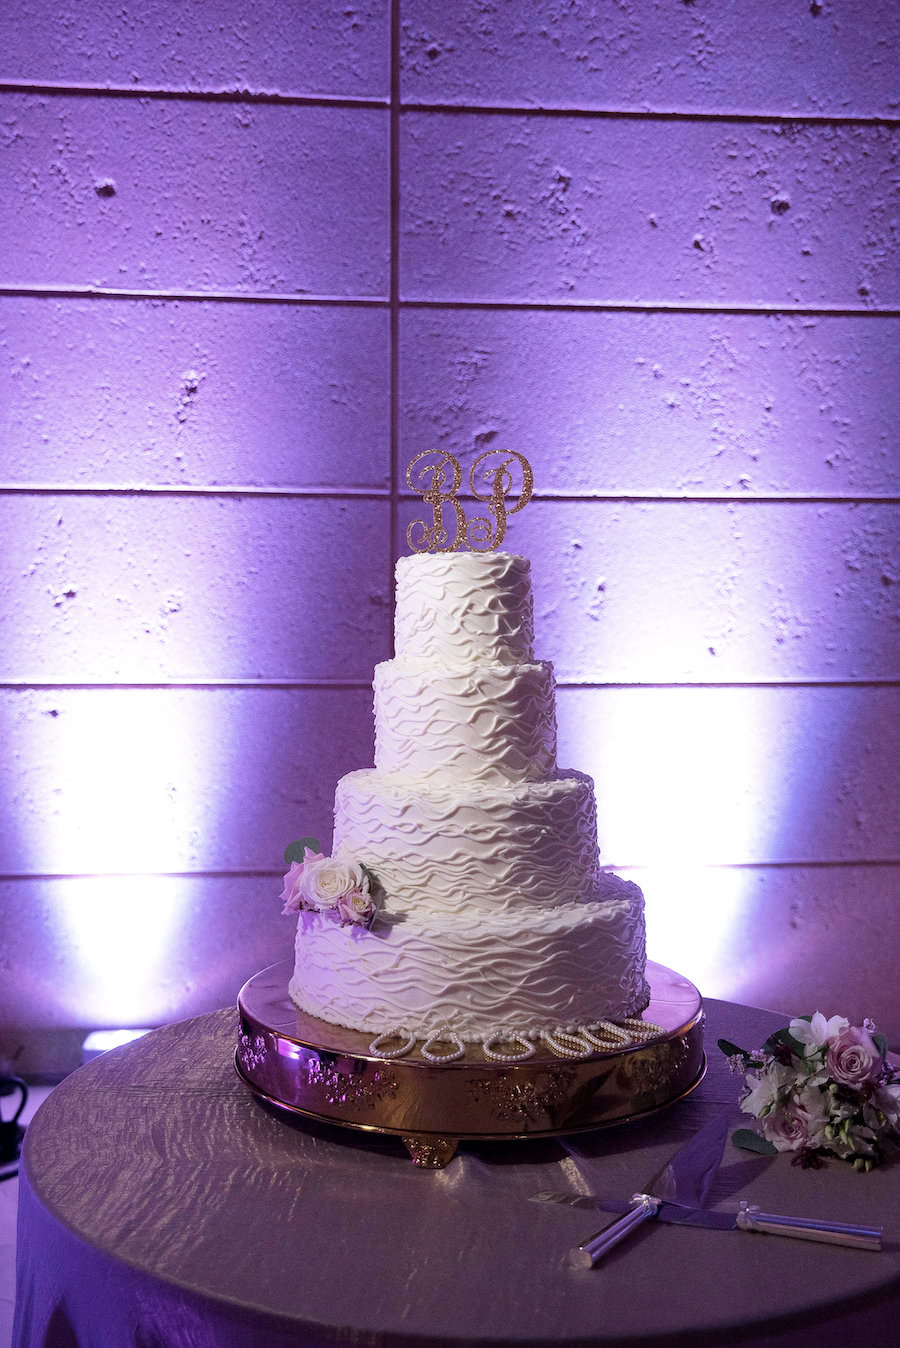 Four Tiered Round White Wedding Cake | Tampa Bay Wedding Cake Bakery Olympia Catering with Initial Topper and White and Blush Roses